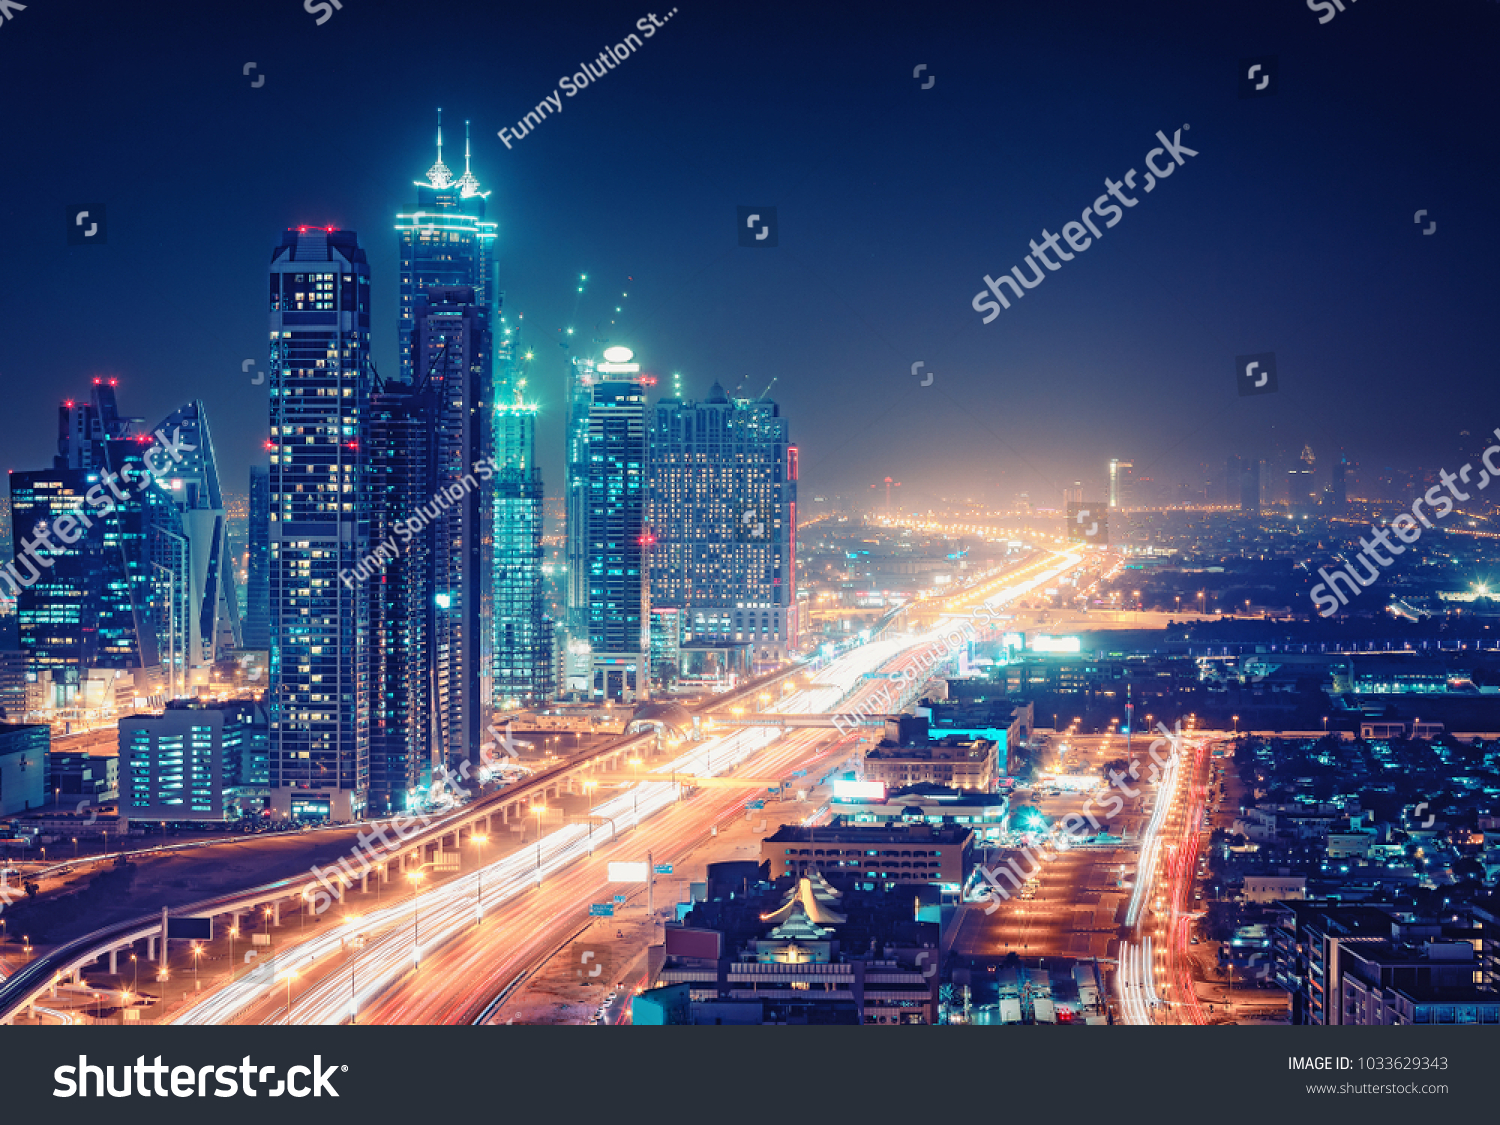 Spectacular nighttime skyline of a big modern city at night